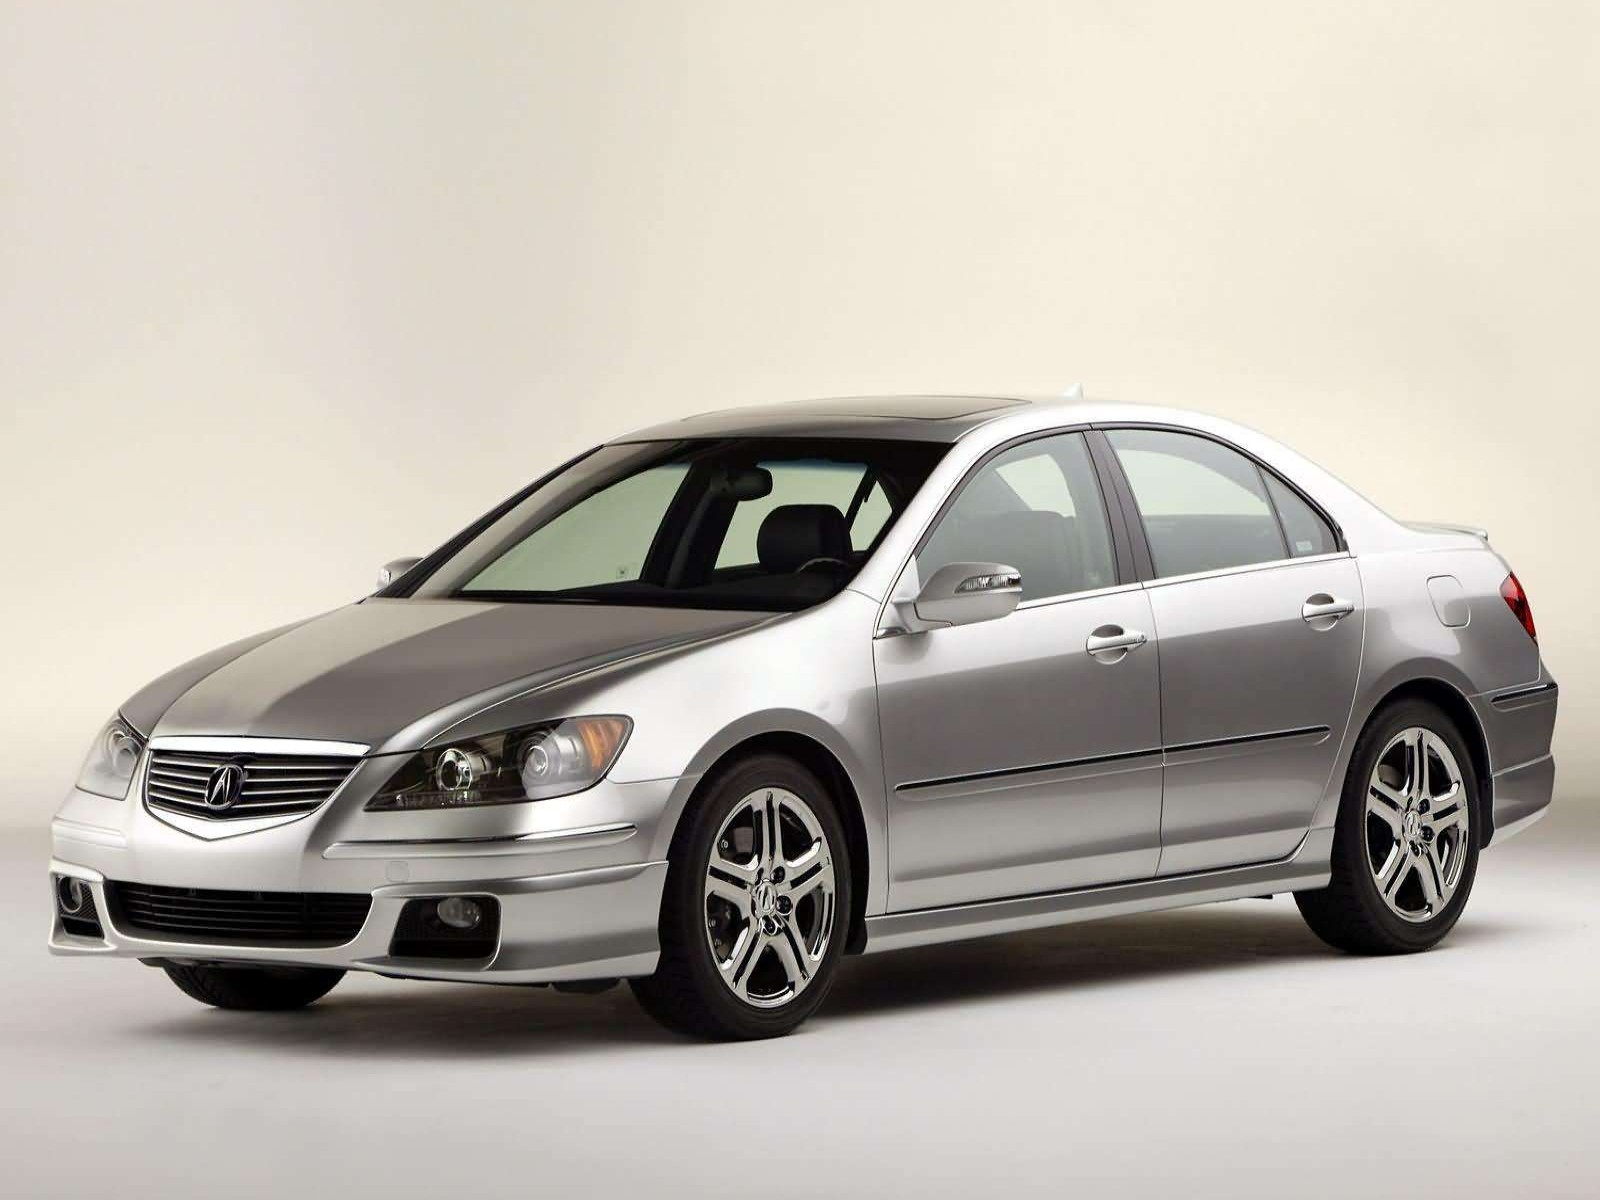 2005 Acura RL with ASPEC Performance Package photo - 1